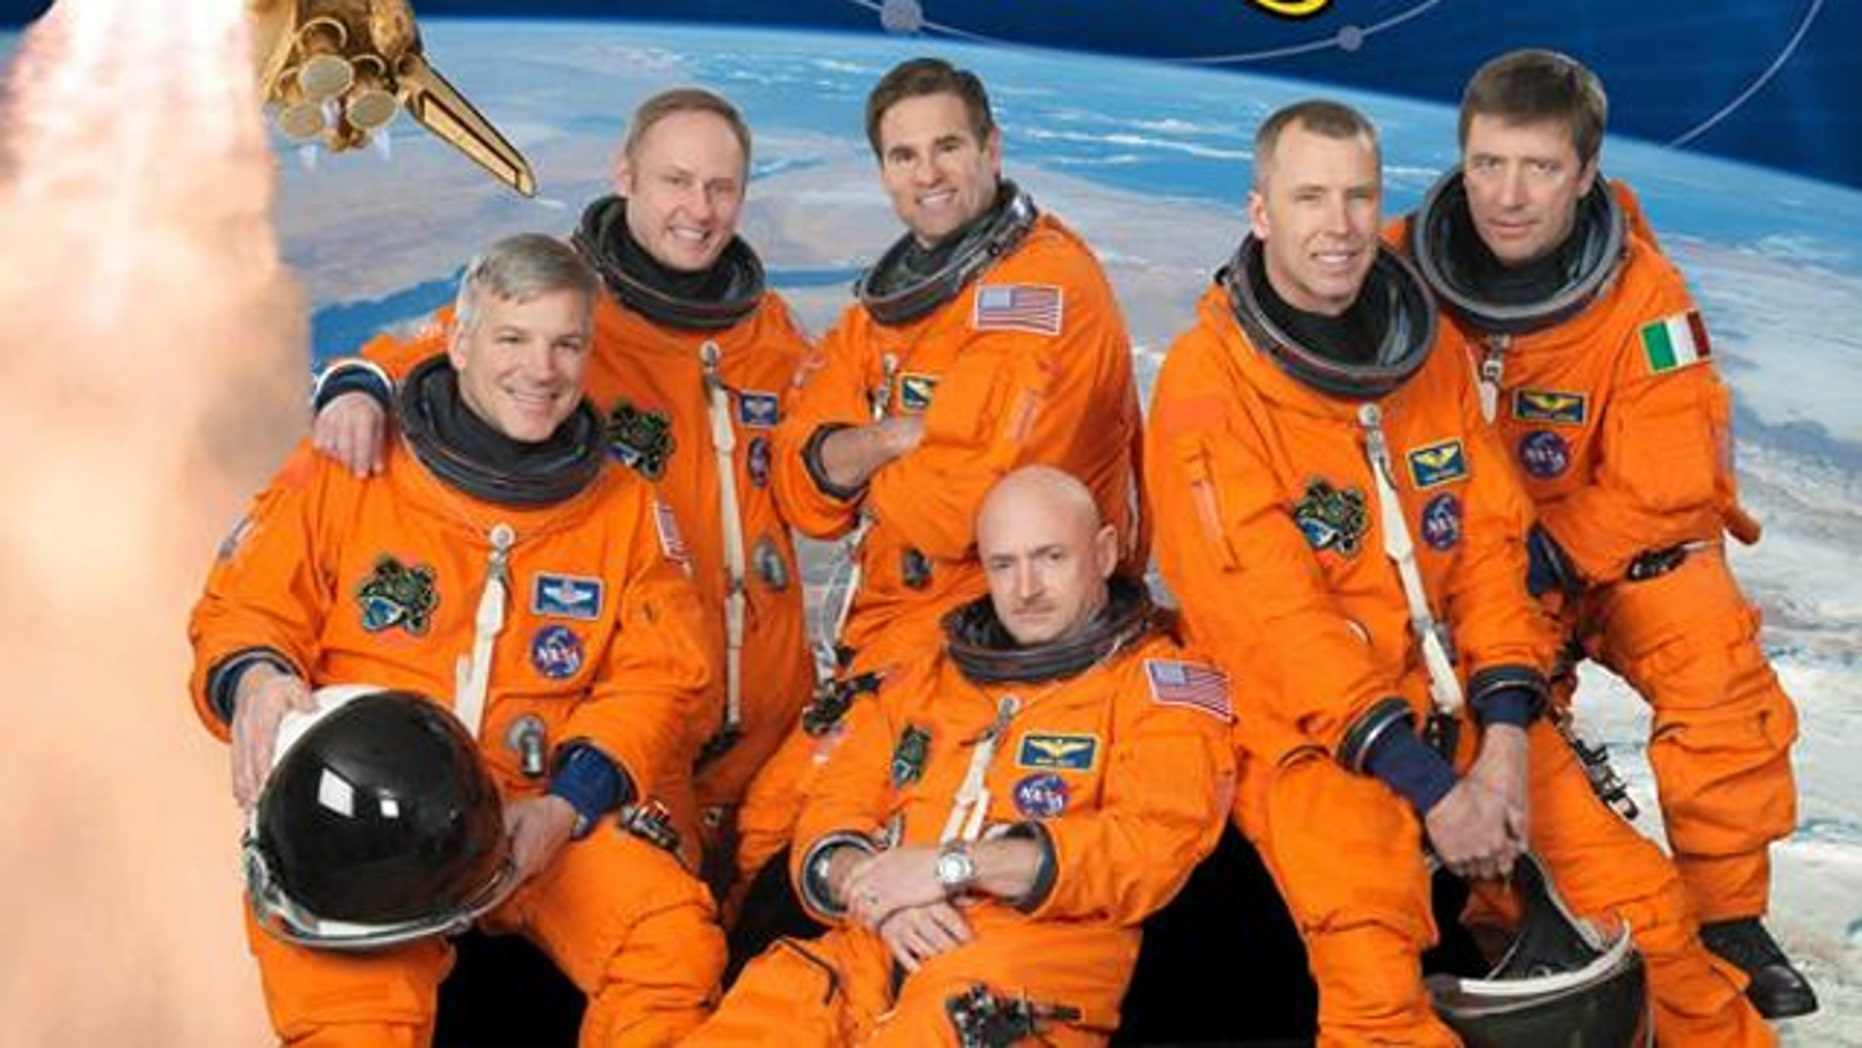 Pictured clockwise in the STS-134 crew portrait are NASA astronauts Mark Kelly (bottom center), commander; Gregory H. Johnson, pilot; Michael Fincke, Greg Chamitoff, Andrew Feustel and European Space Agency's Roberto Vittori, all mission specialists.